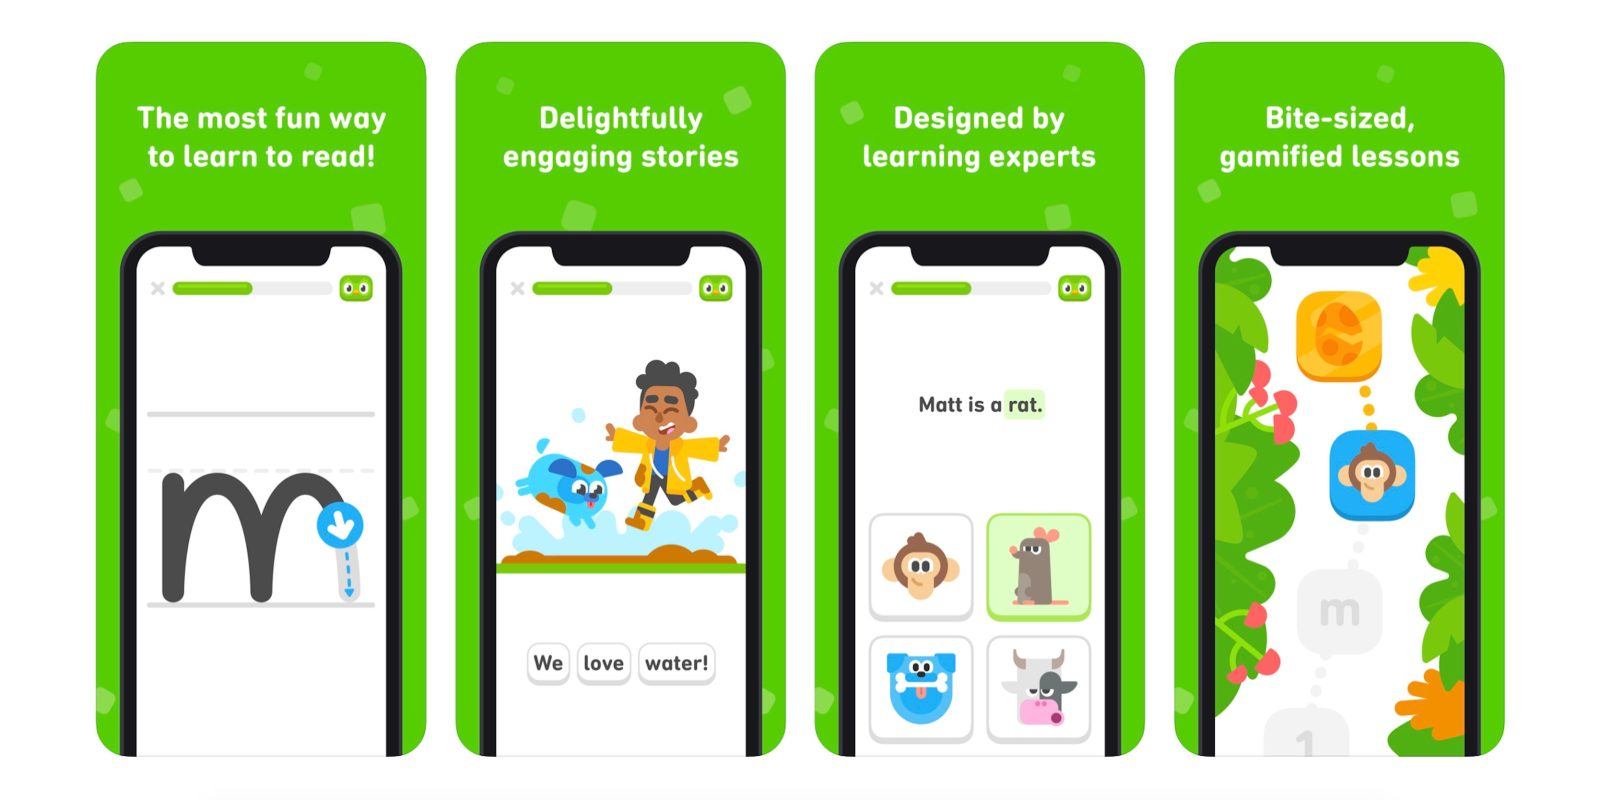 Duolingo ABC arrives as free interactive iOS app without ads to teach kids  to read - 9to5Mac